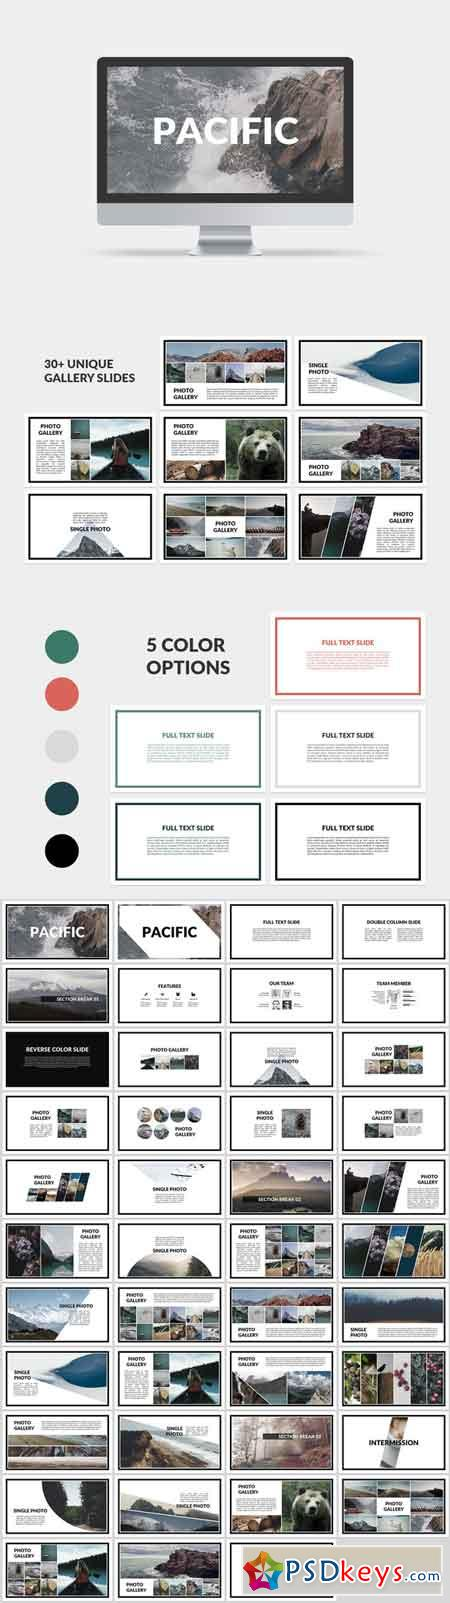 Pacific PowerPoint Template 631199